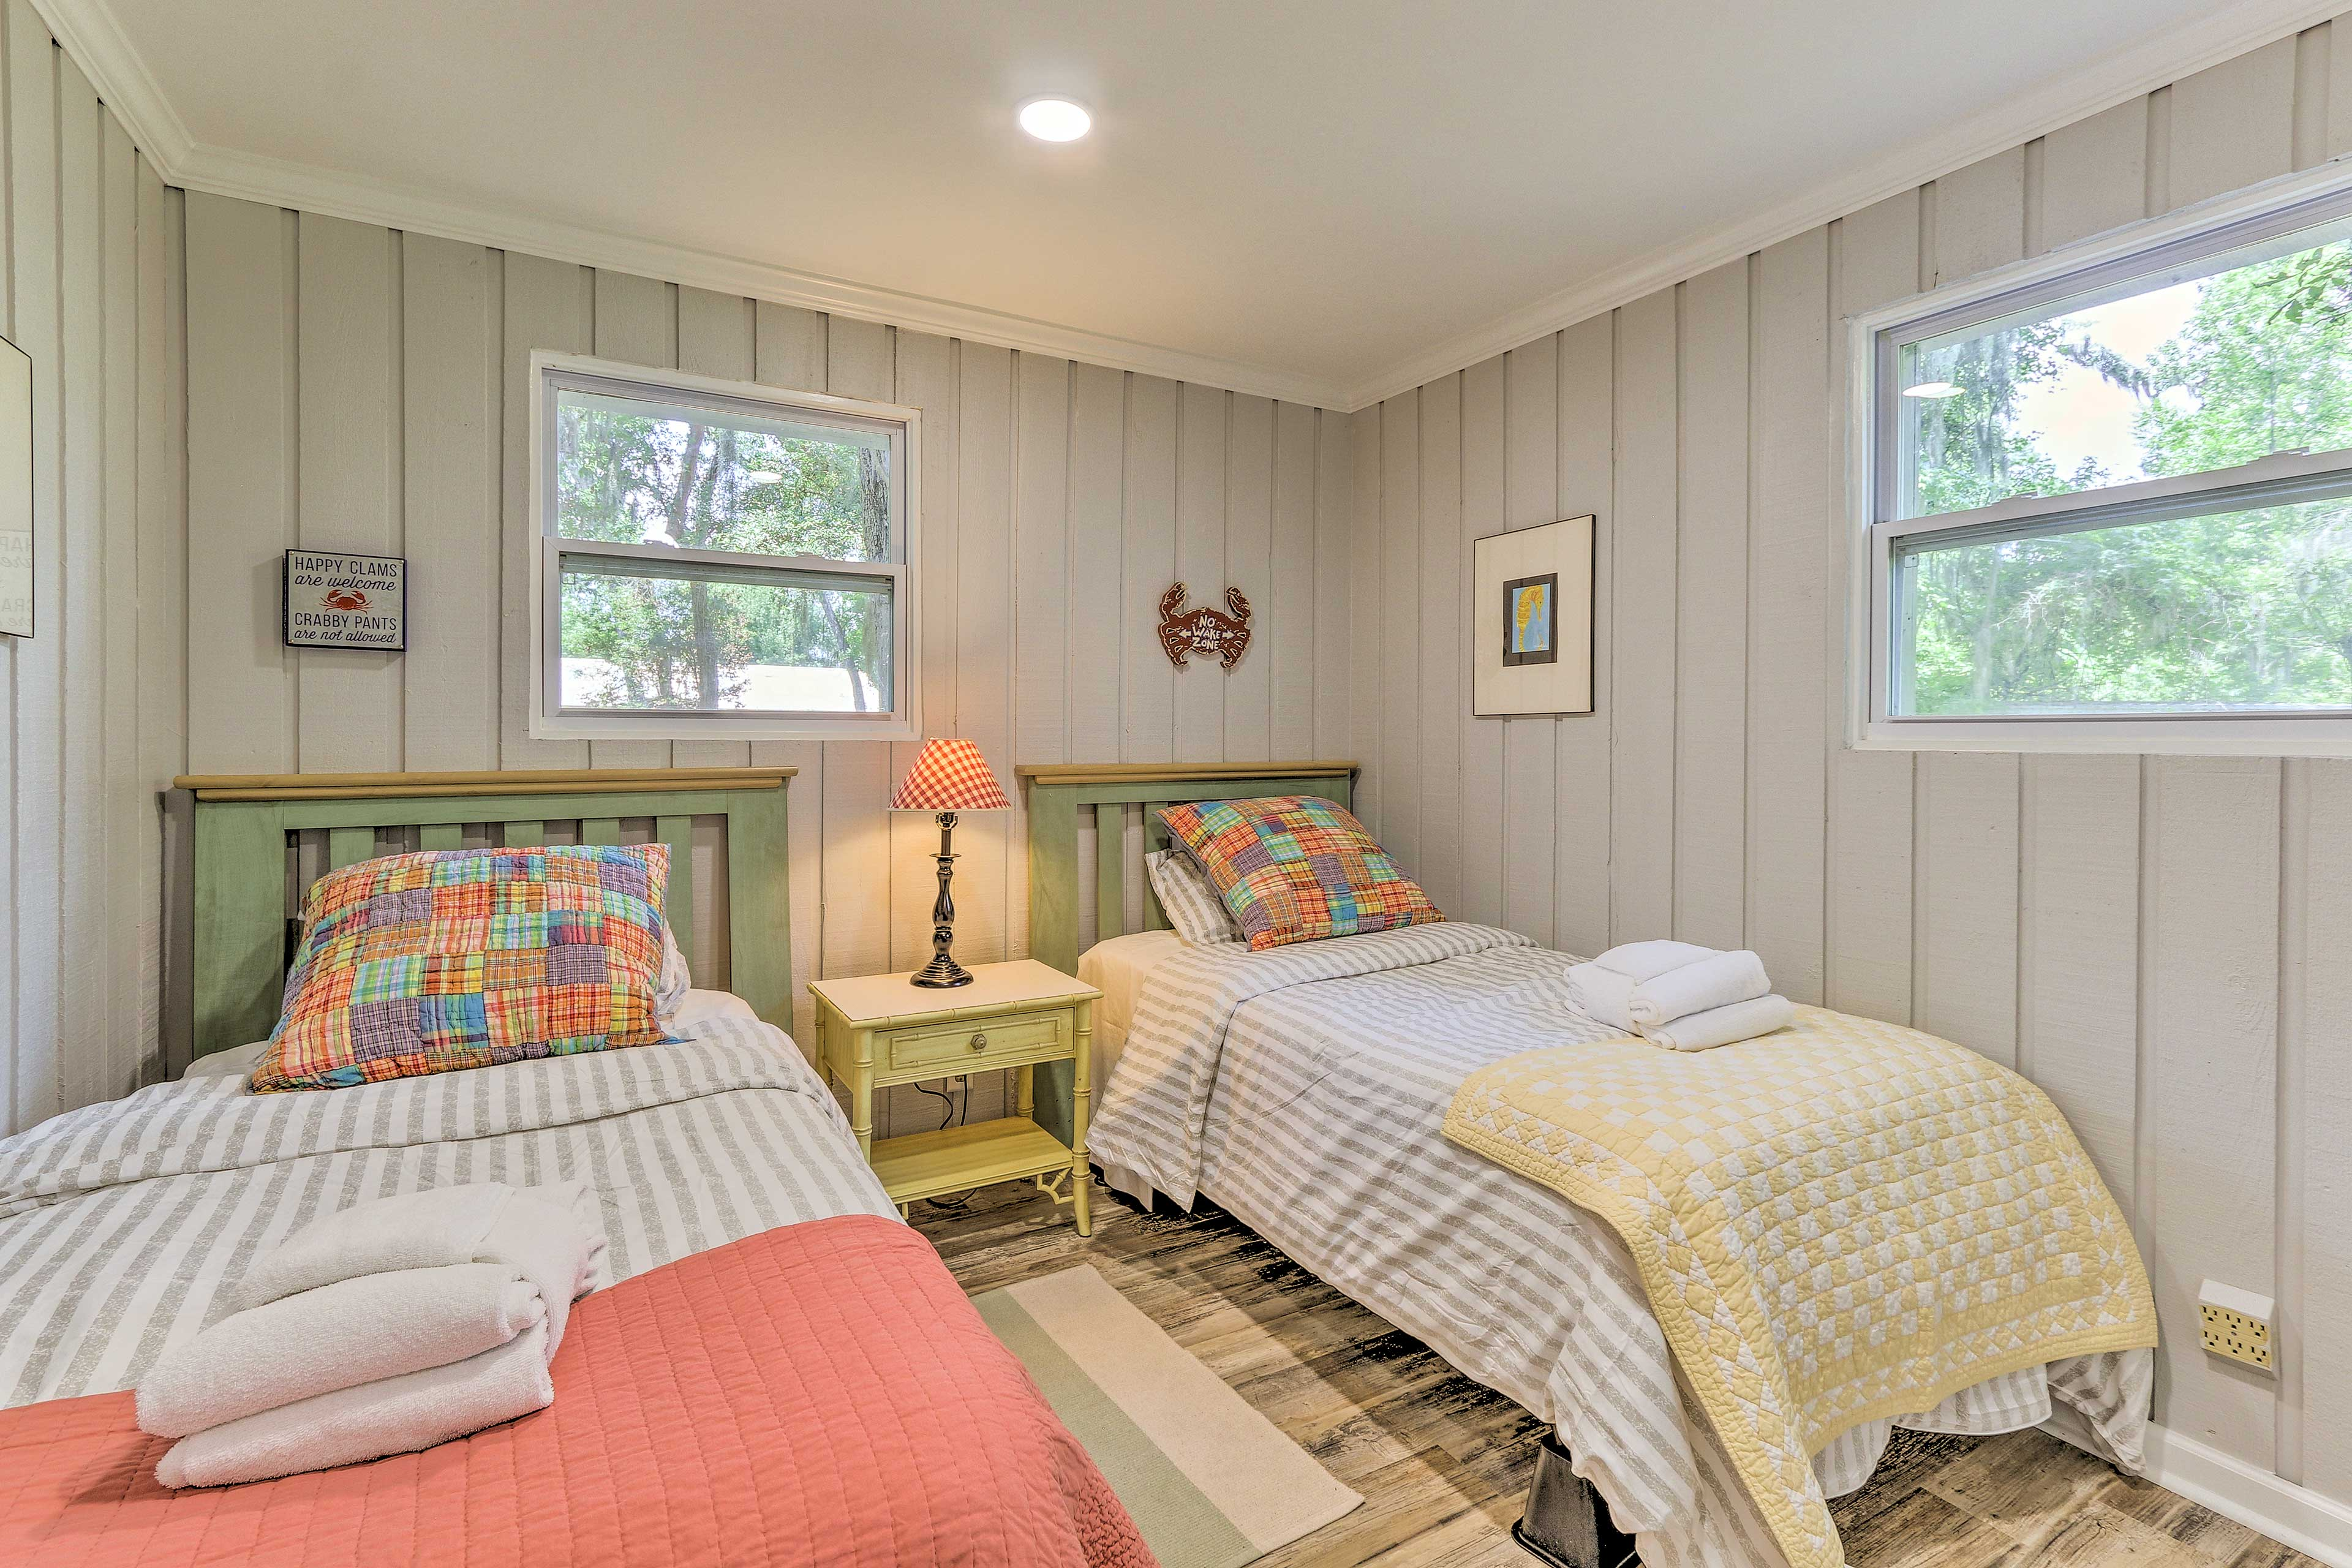 The kids will enjoy these twin beds.